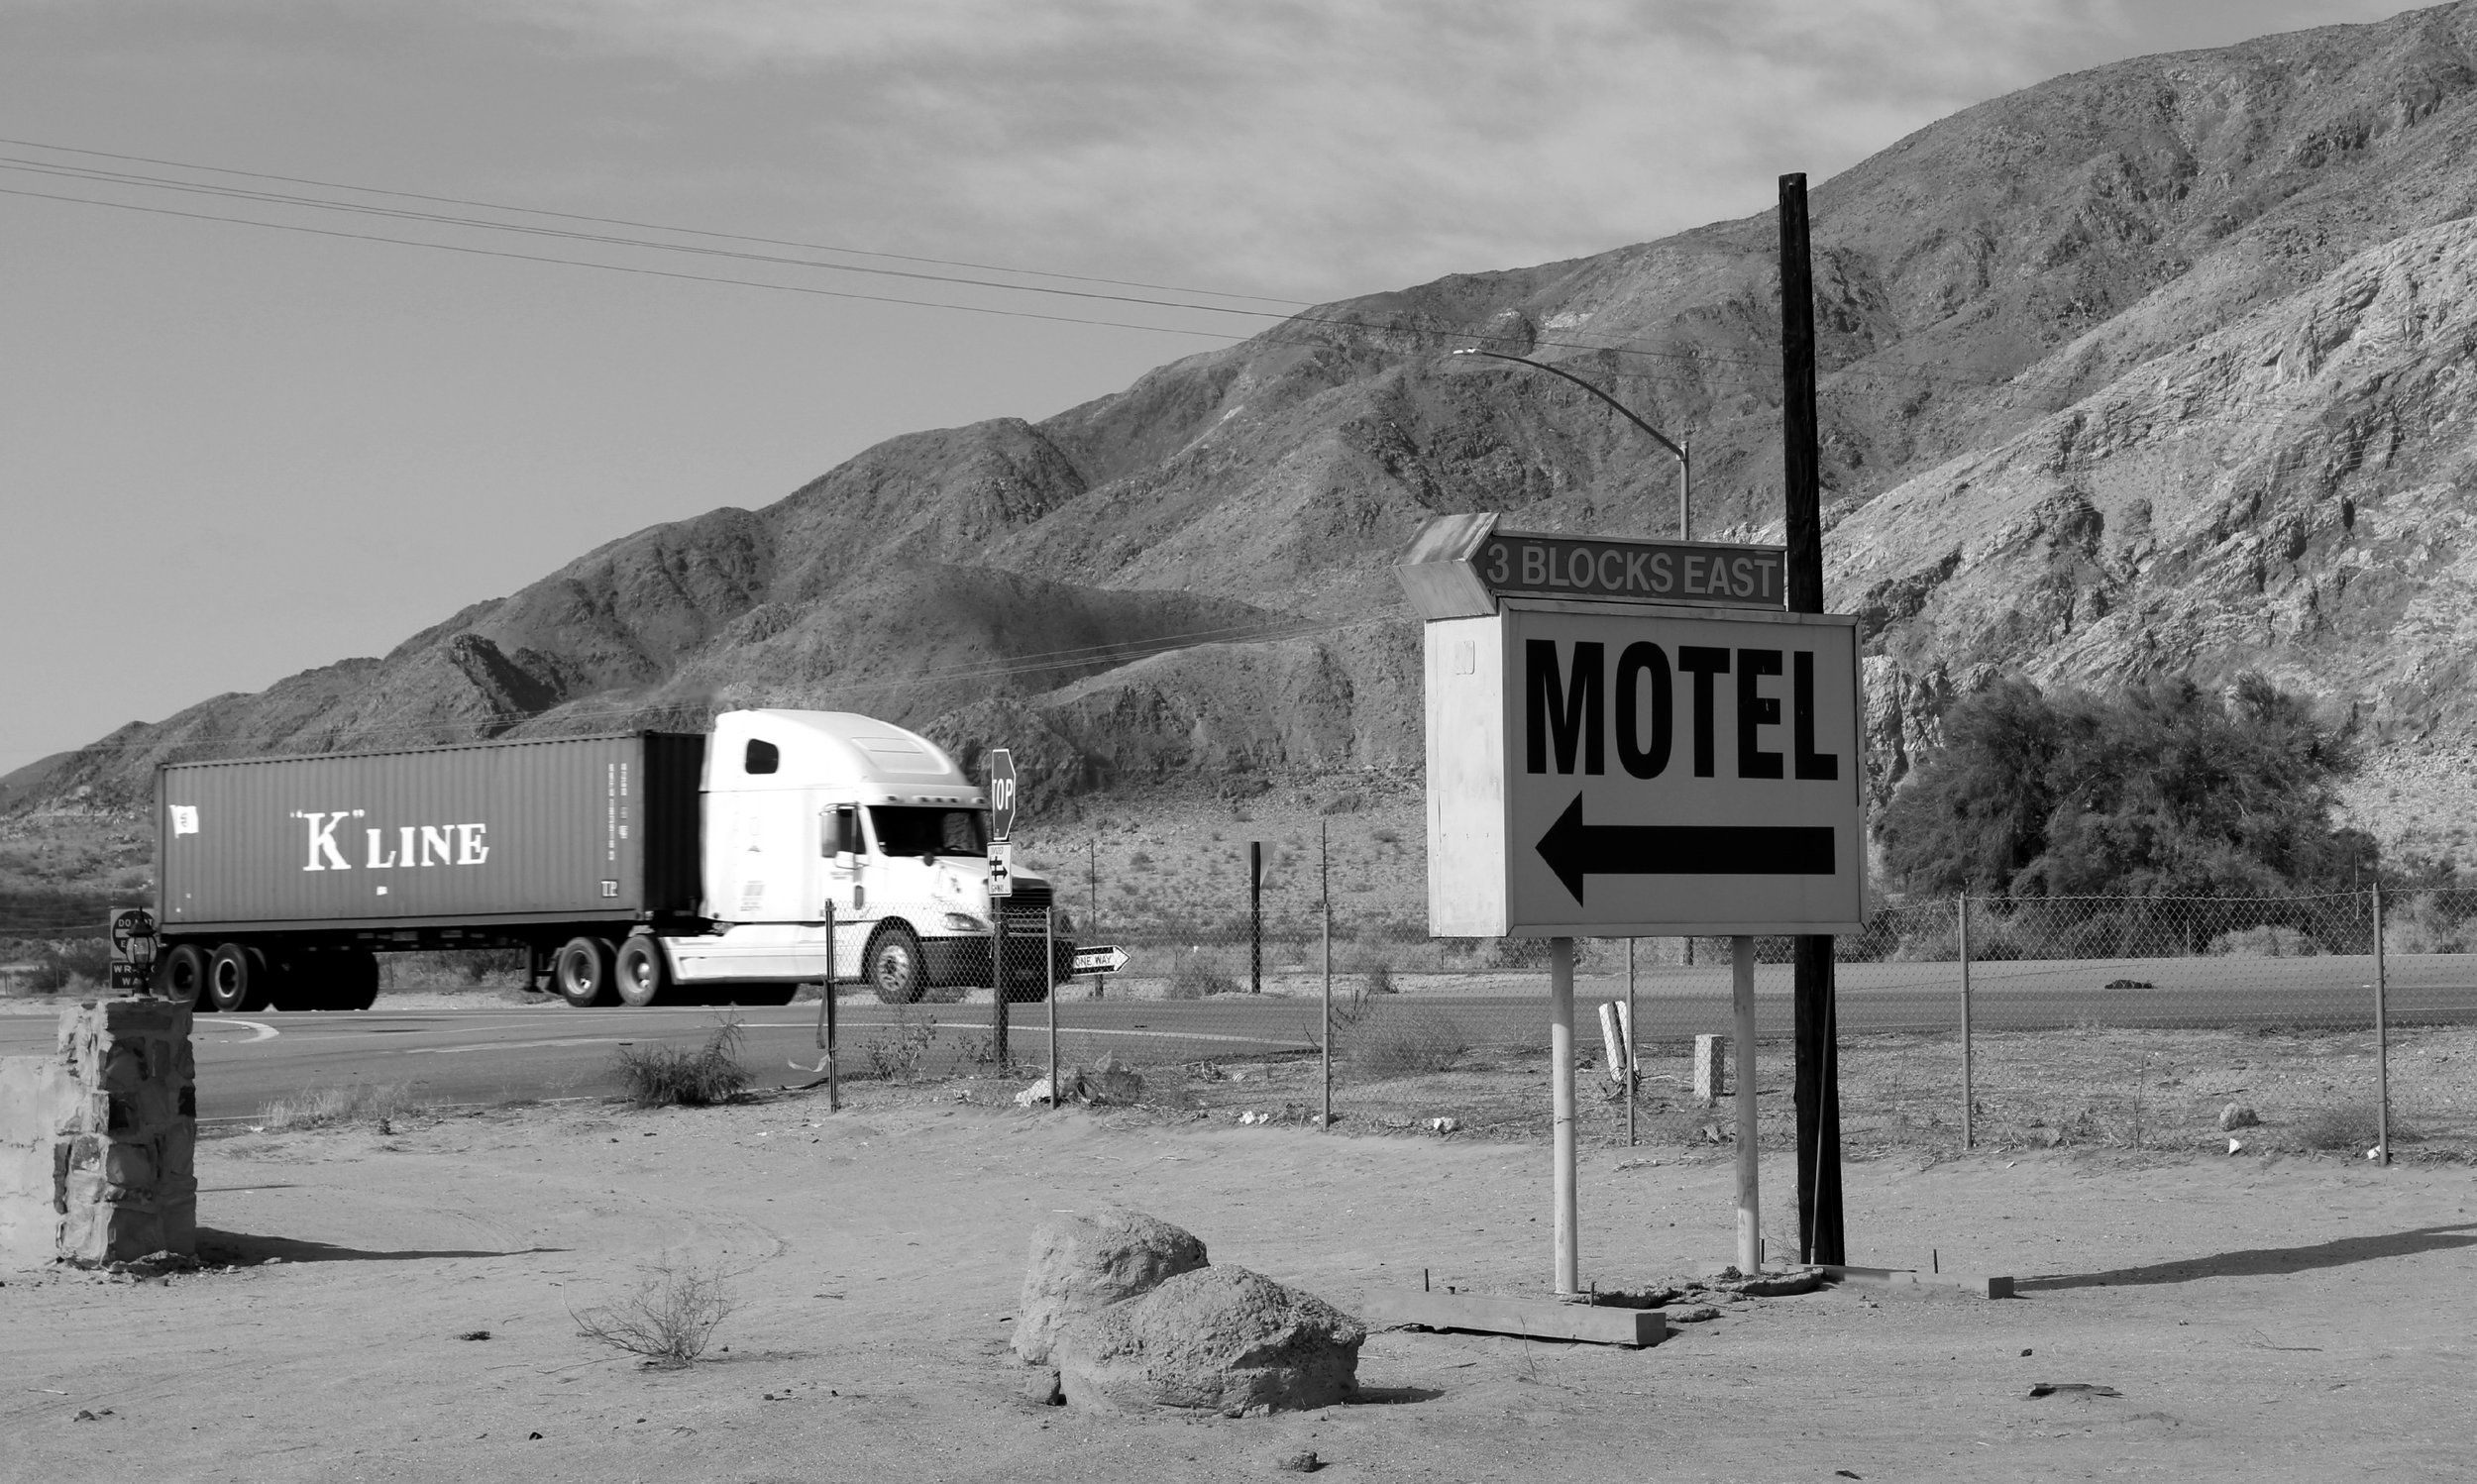 A big rig passes an old motel sign at Desert Shores along the former U.S. 99, now State Route 86, at the western edge of the Salton Sea.  ©  Stephen H. Provost, 2014.